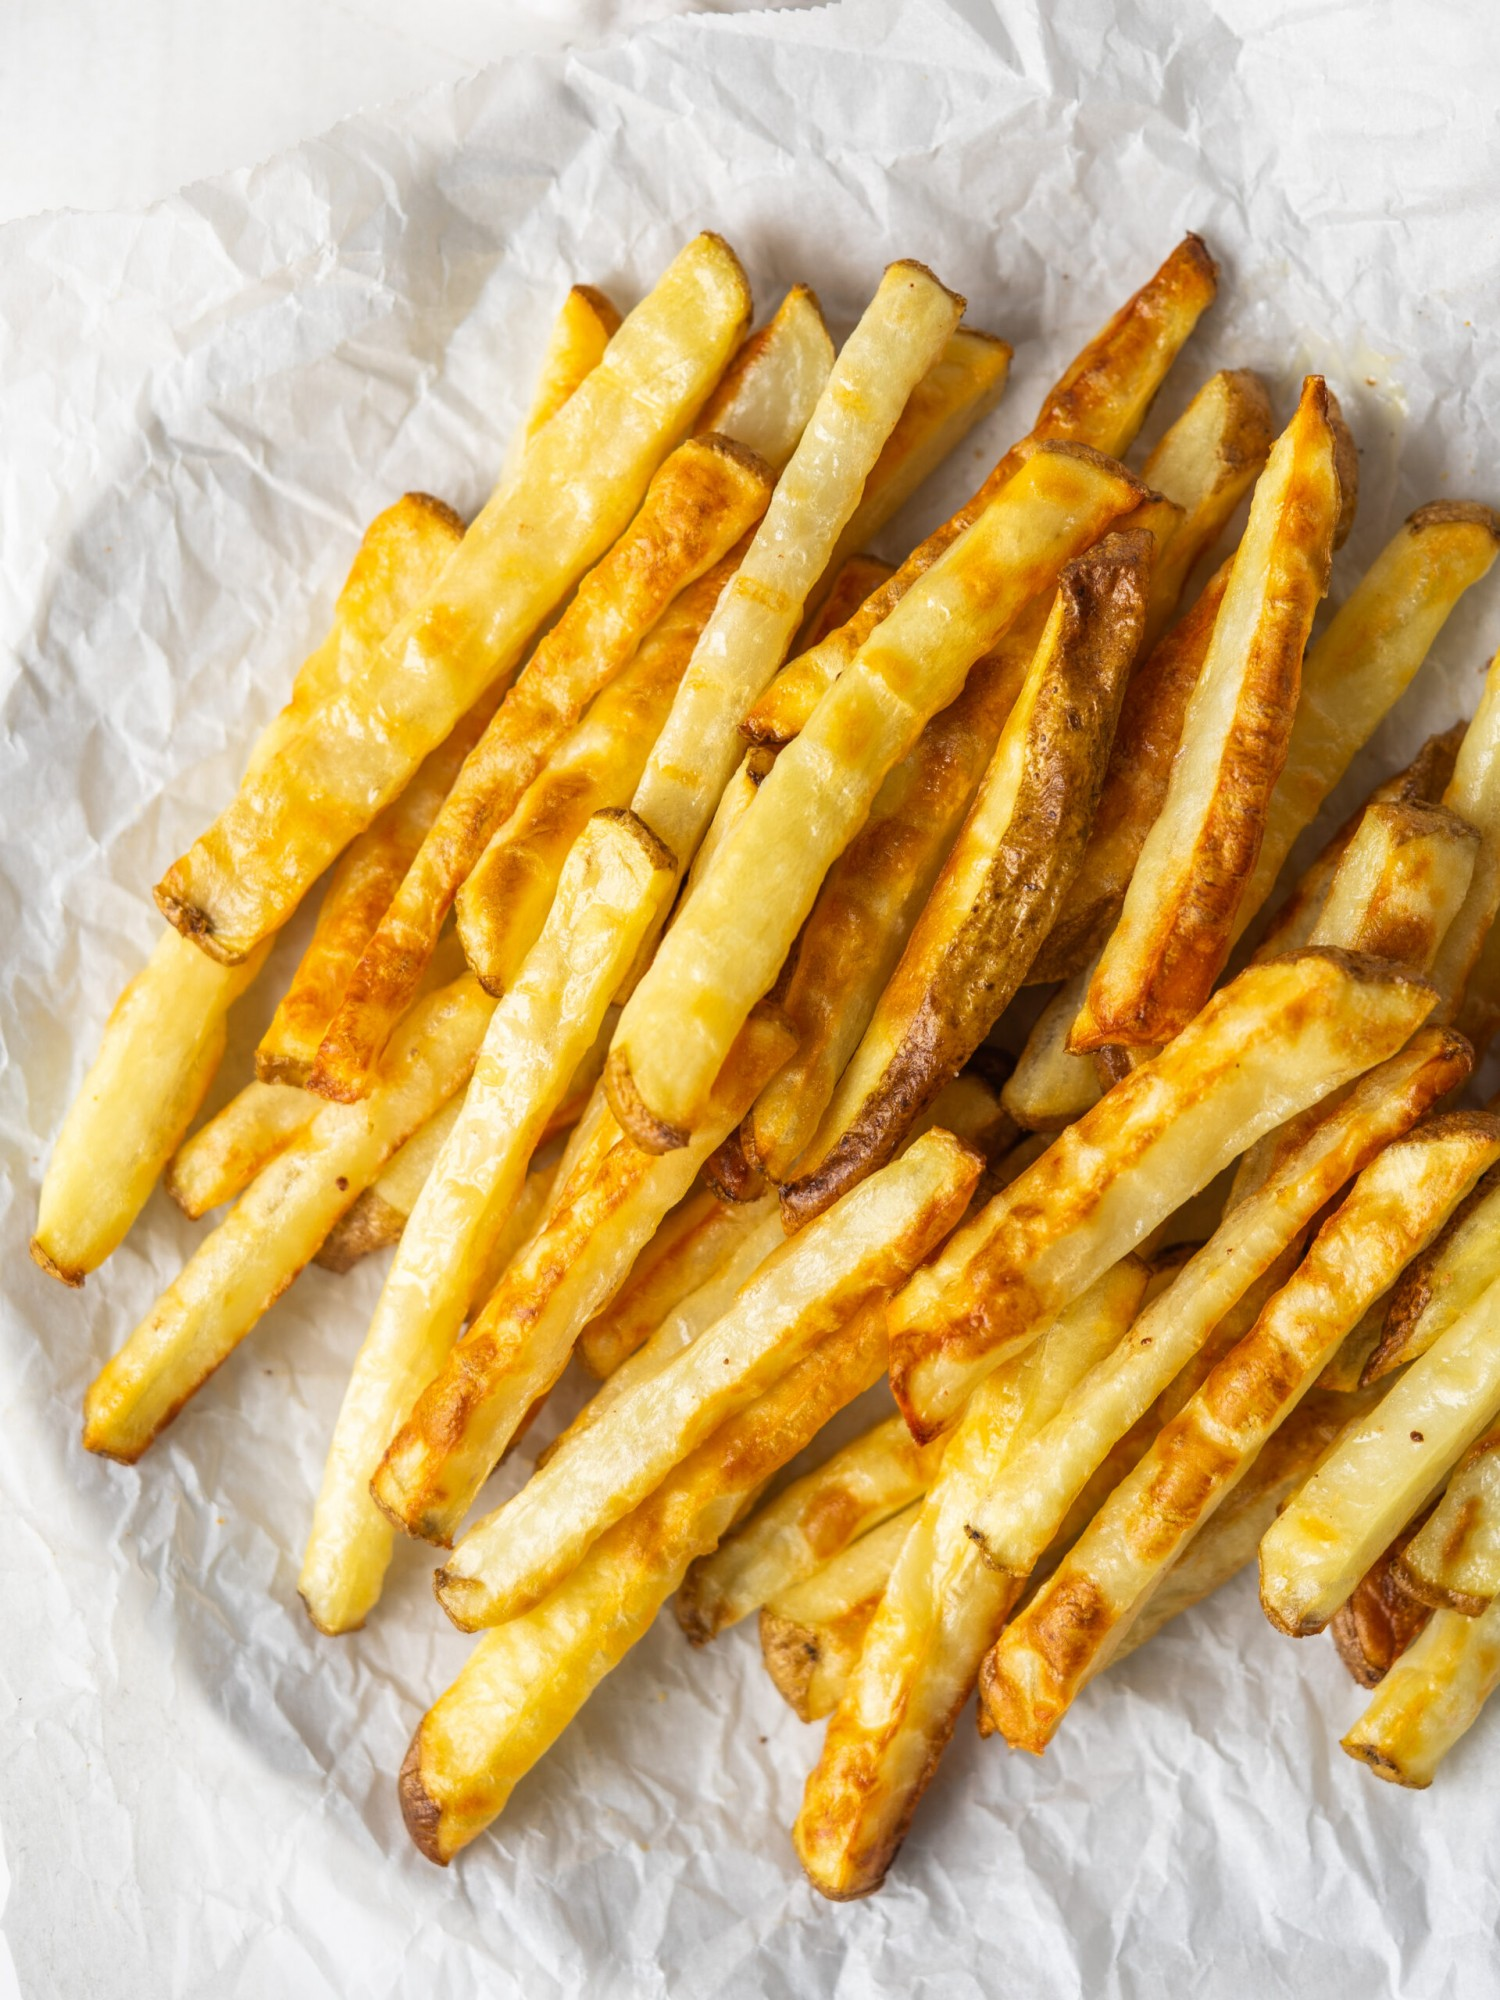 Above view of oven french fries on a piece of parchment paper